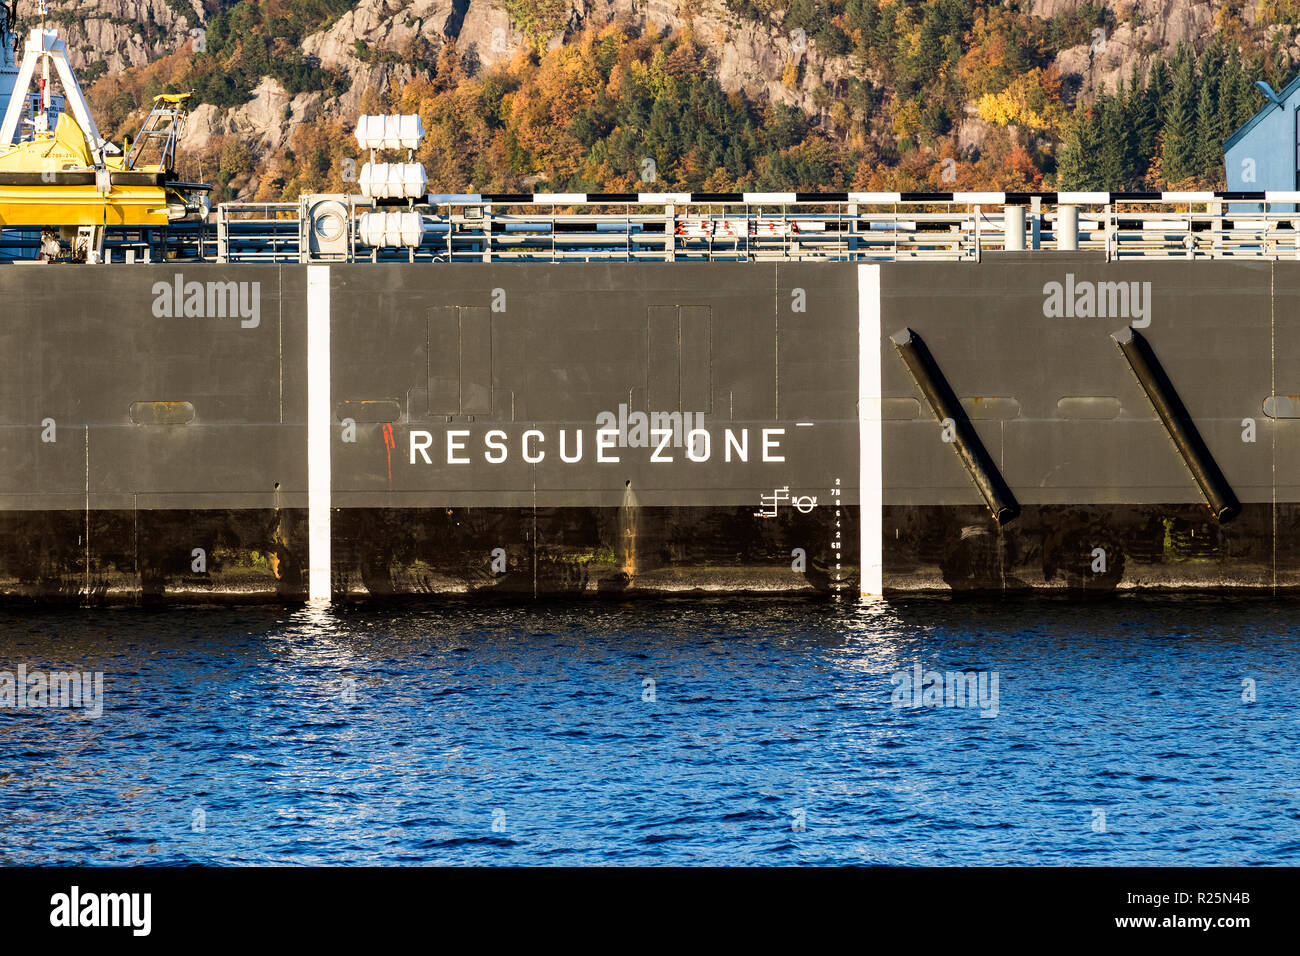 The side of offshore supply vess Olympic Energy, with the rescue zone marked. Ship is berthed at Skoltegrunnskaien quay in the port of Bergen, Norway. - Stock Image